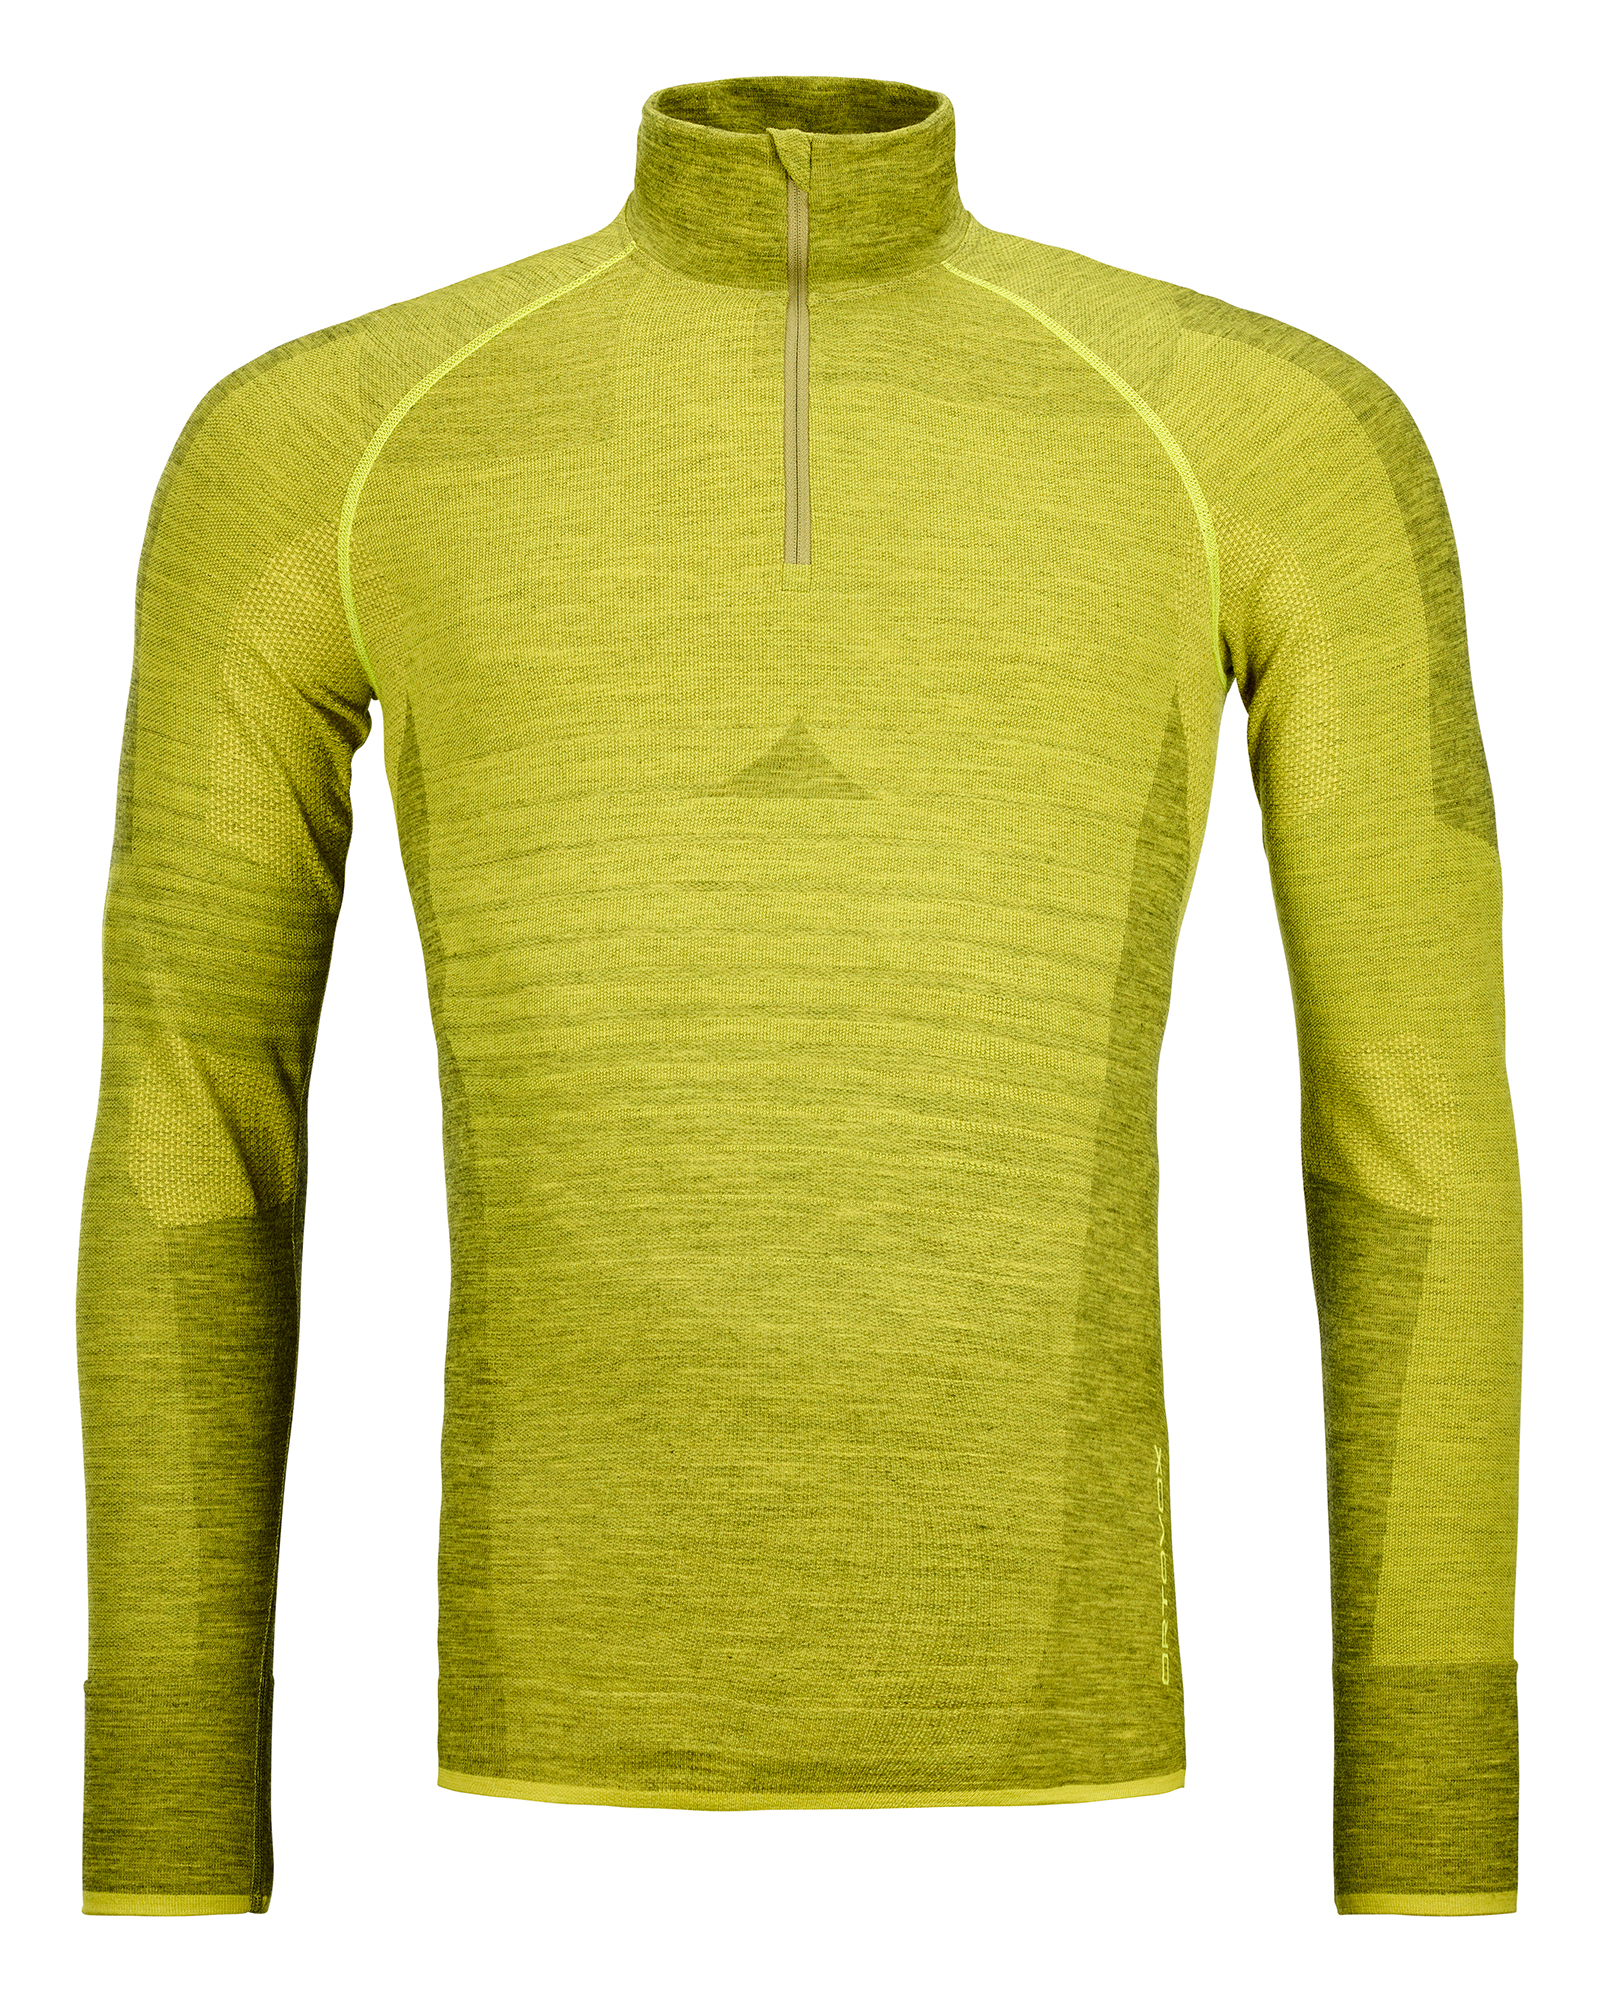 230 COMPETITION ZIP NECK M